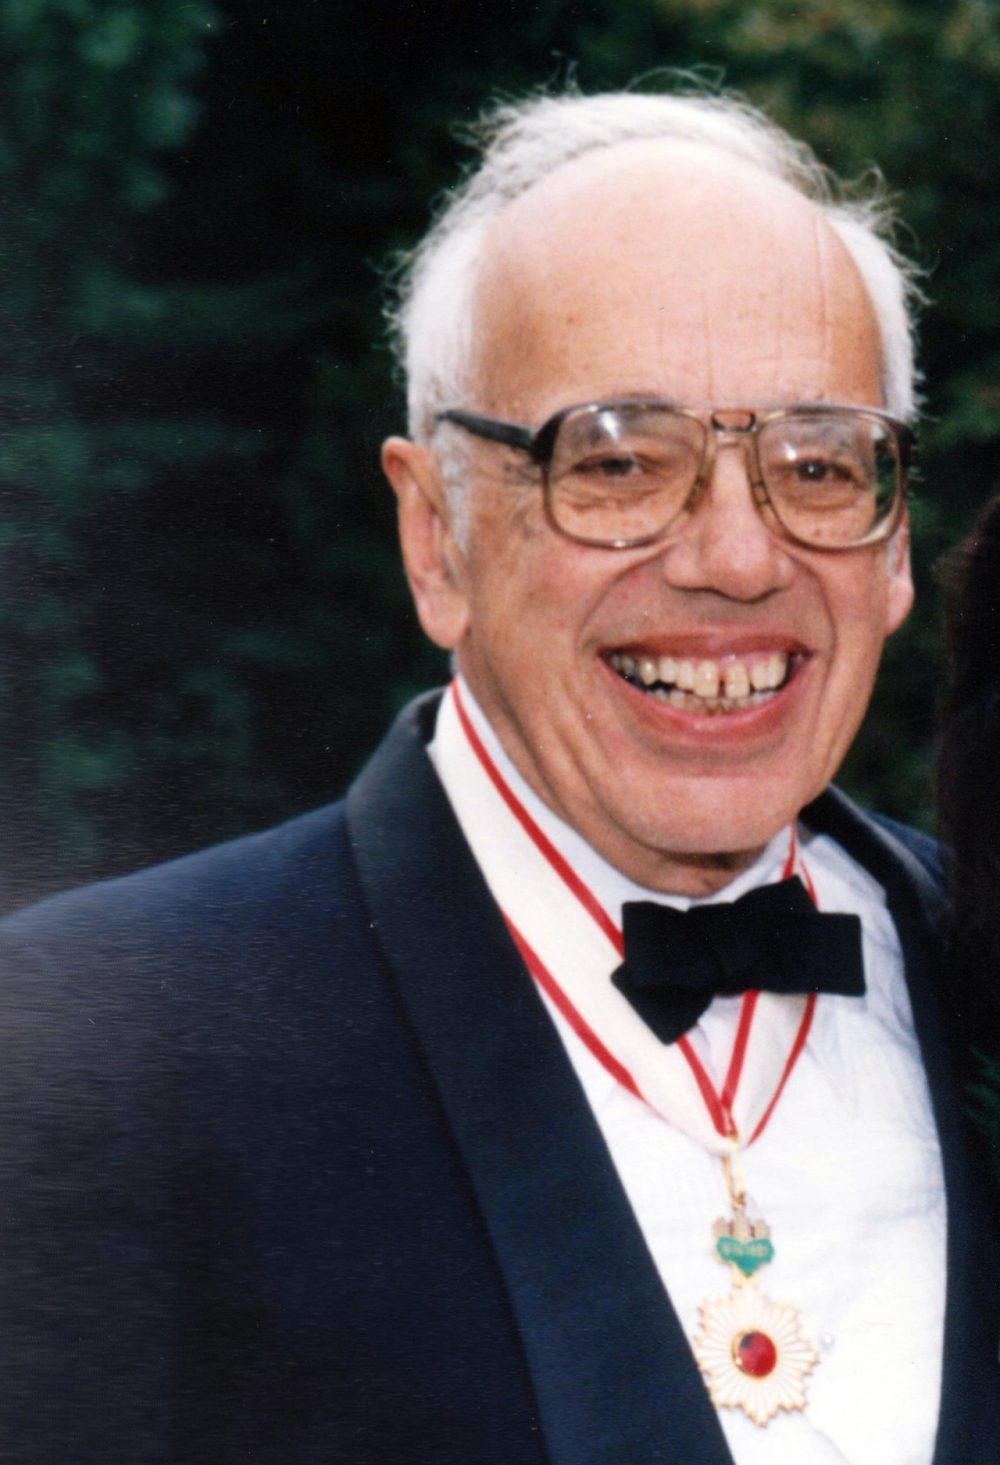 Francis Tenny wears his Order of the Rising Sun medal in 1993. (Courtesy of Laura Tenny)